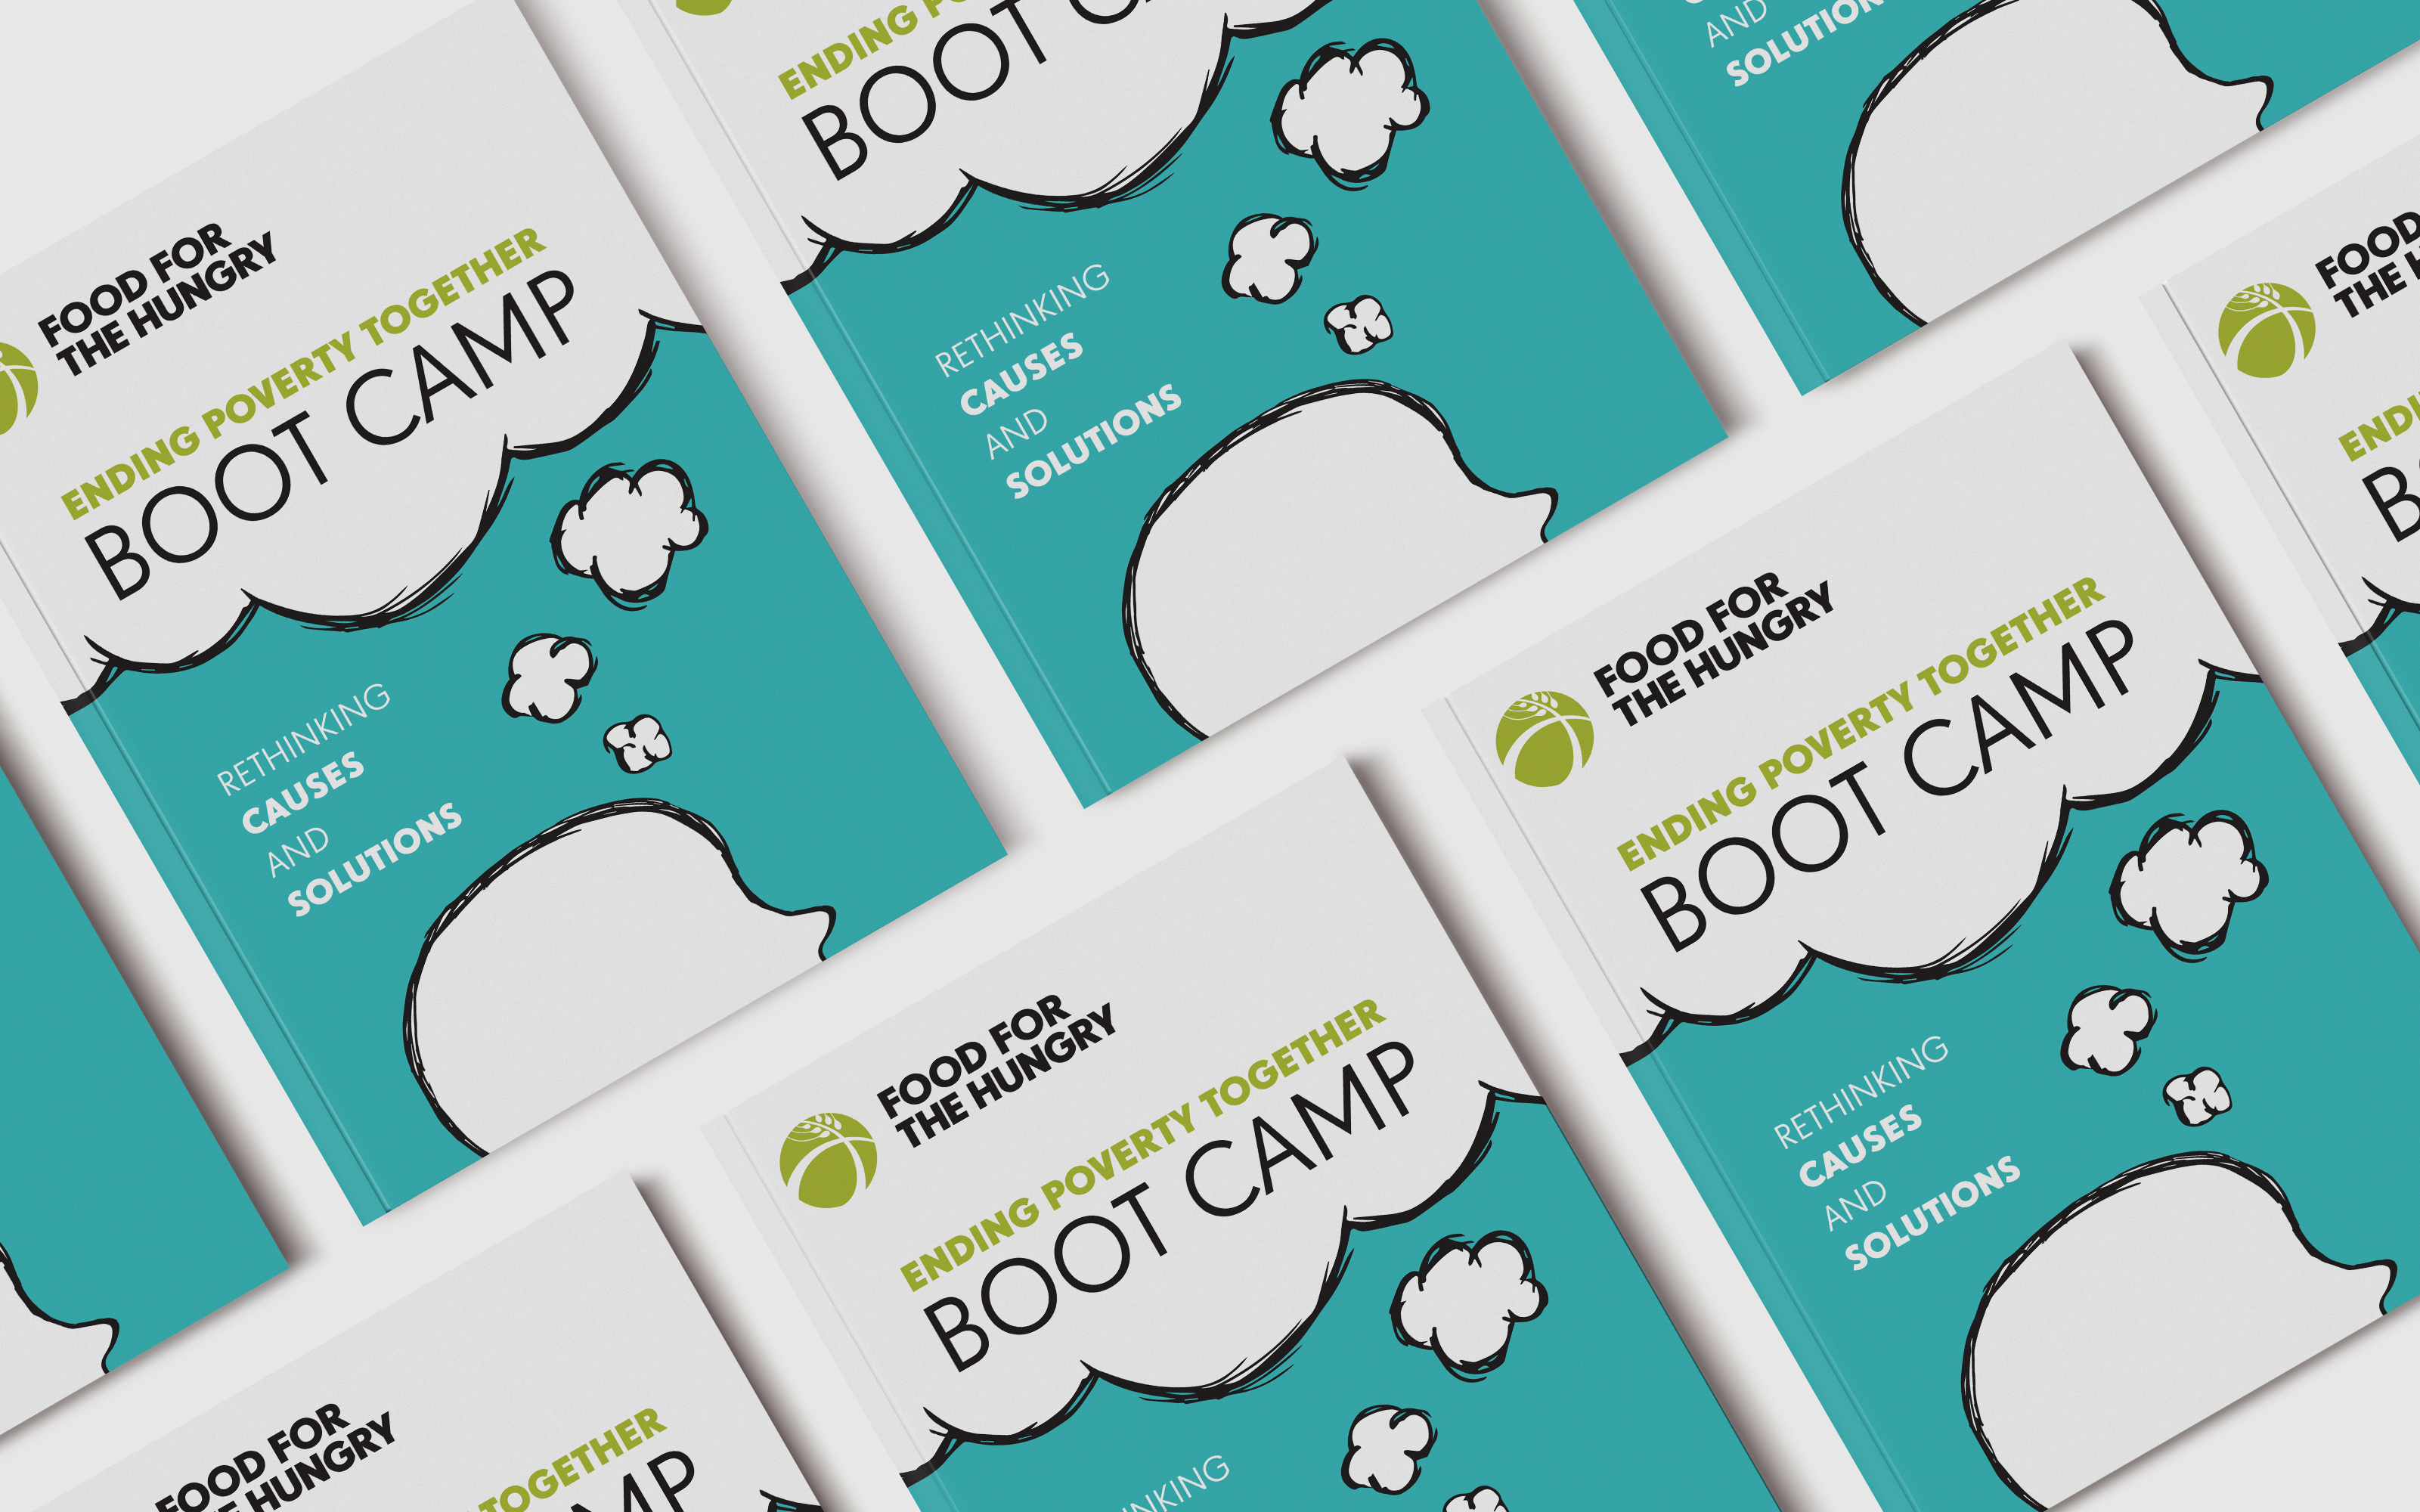 Boot Camp Workbook